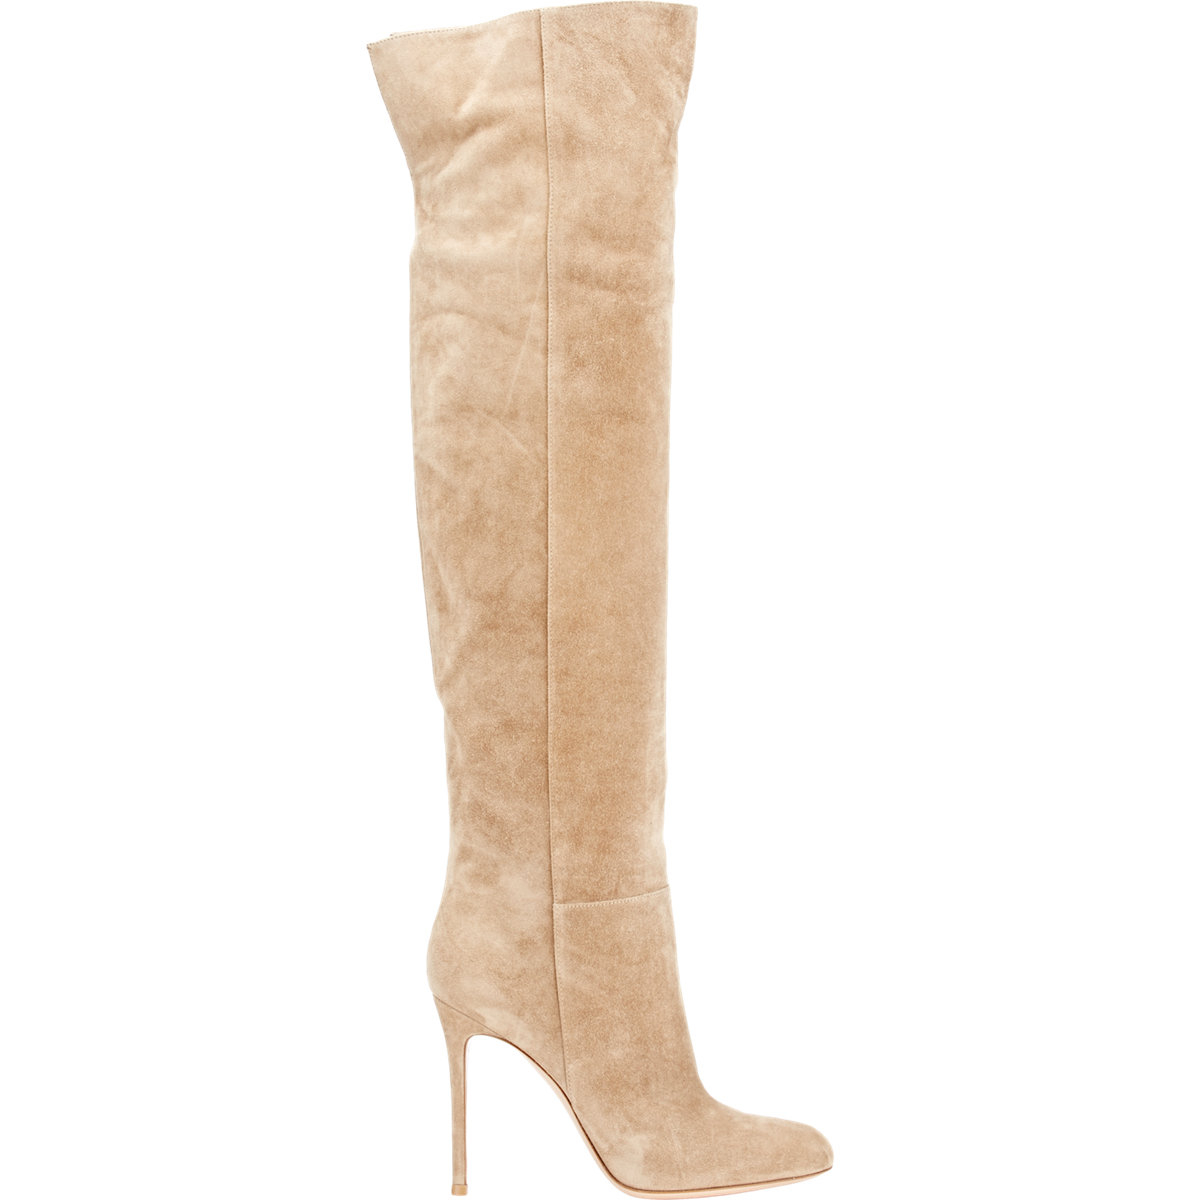 Gianvito rossi Suede Over-the-knee Boots in Natural | Lyst